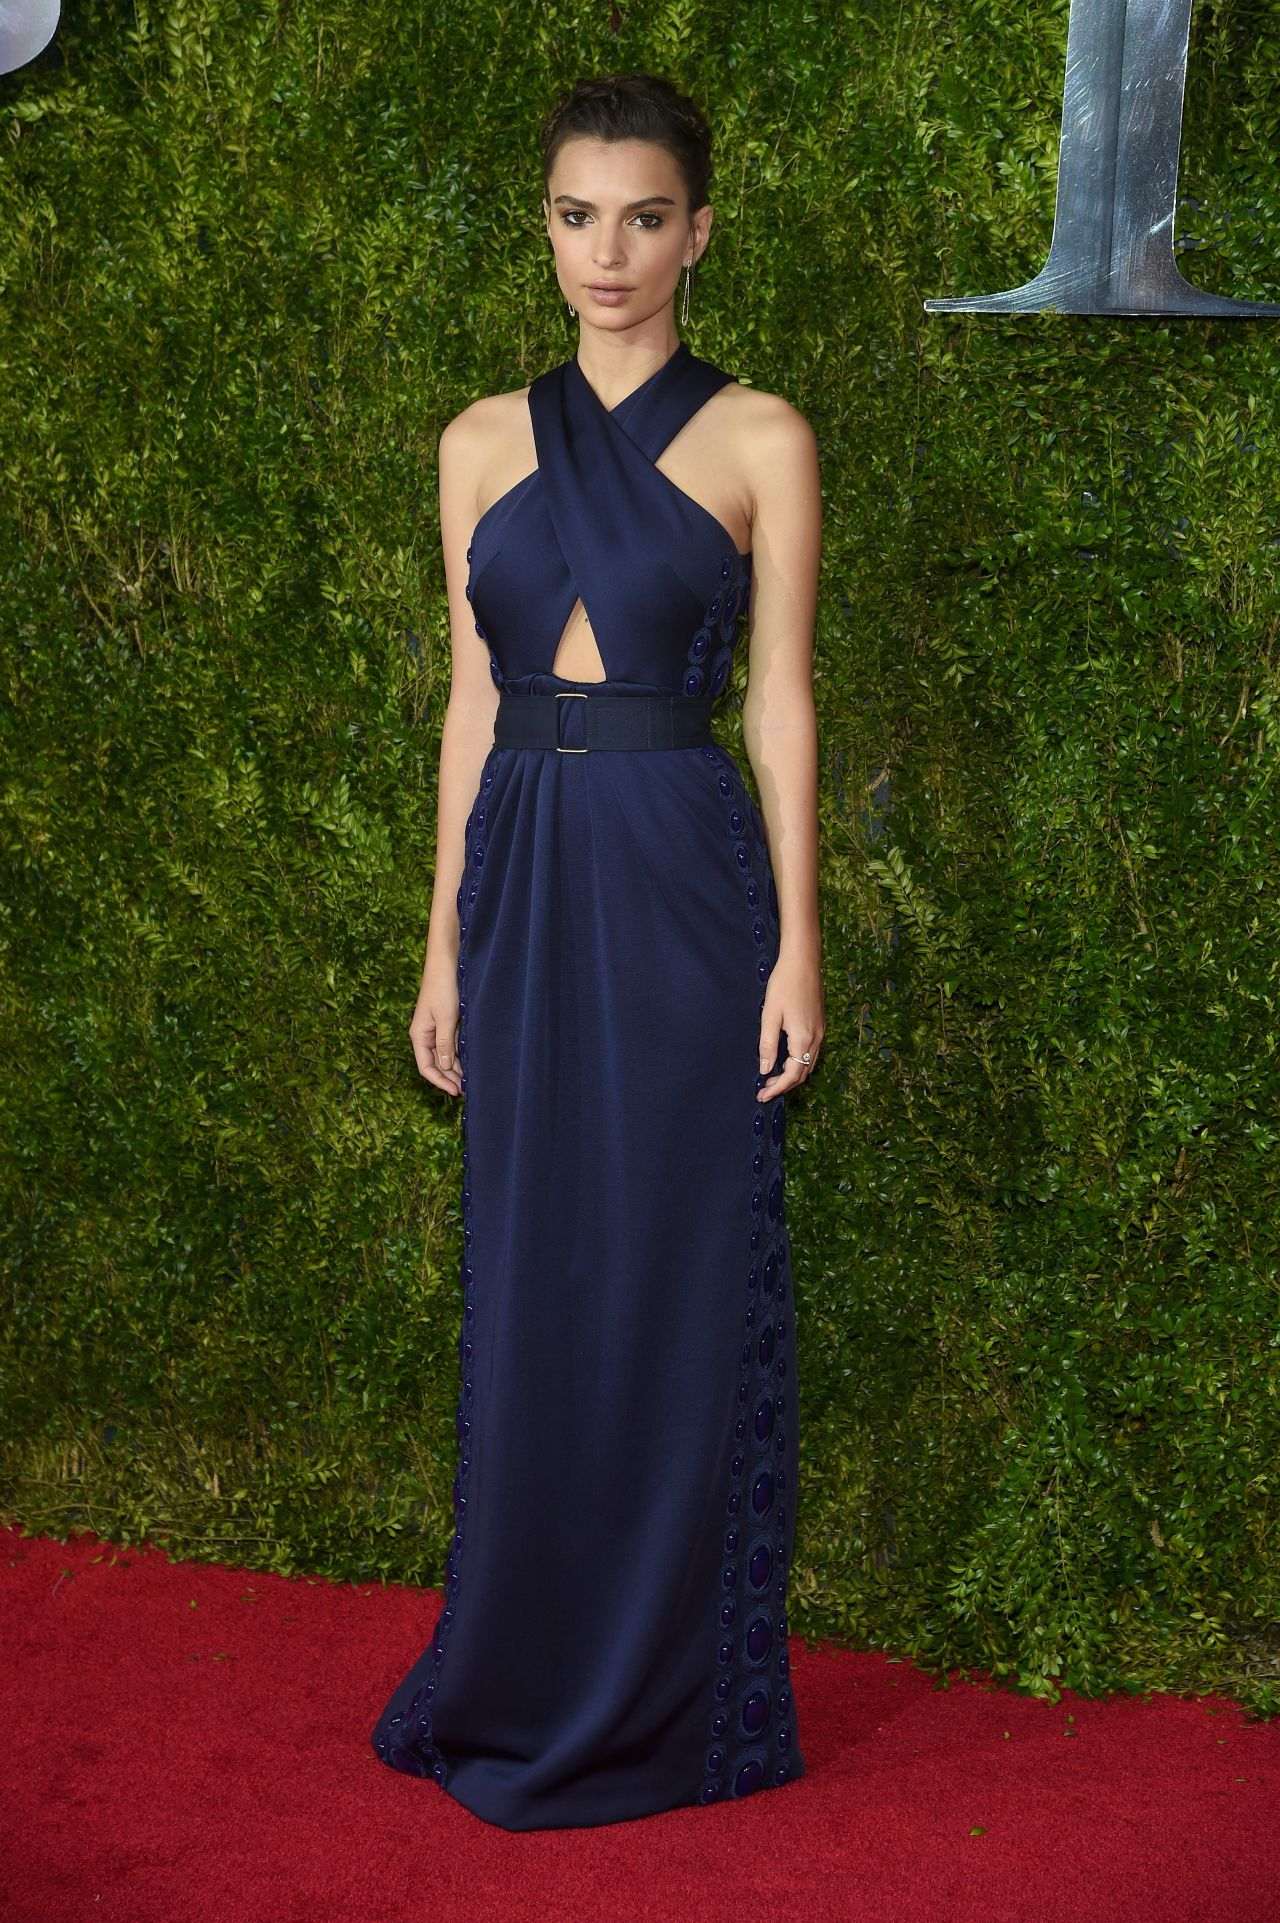 emily-ratajkowski-2015-tony-awards-in-new-york-city_2